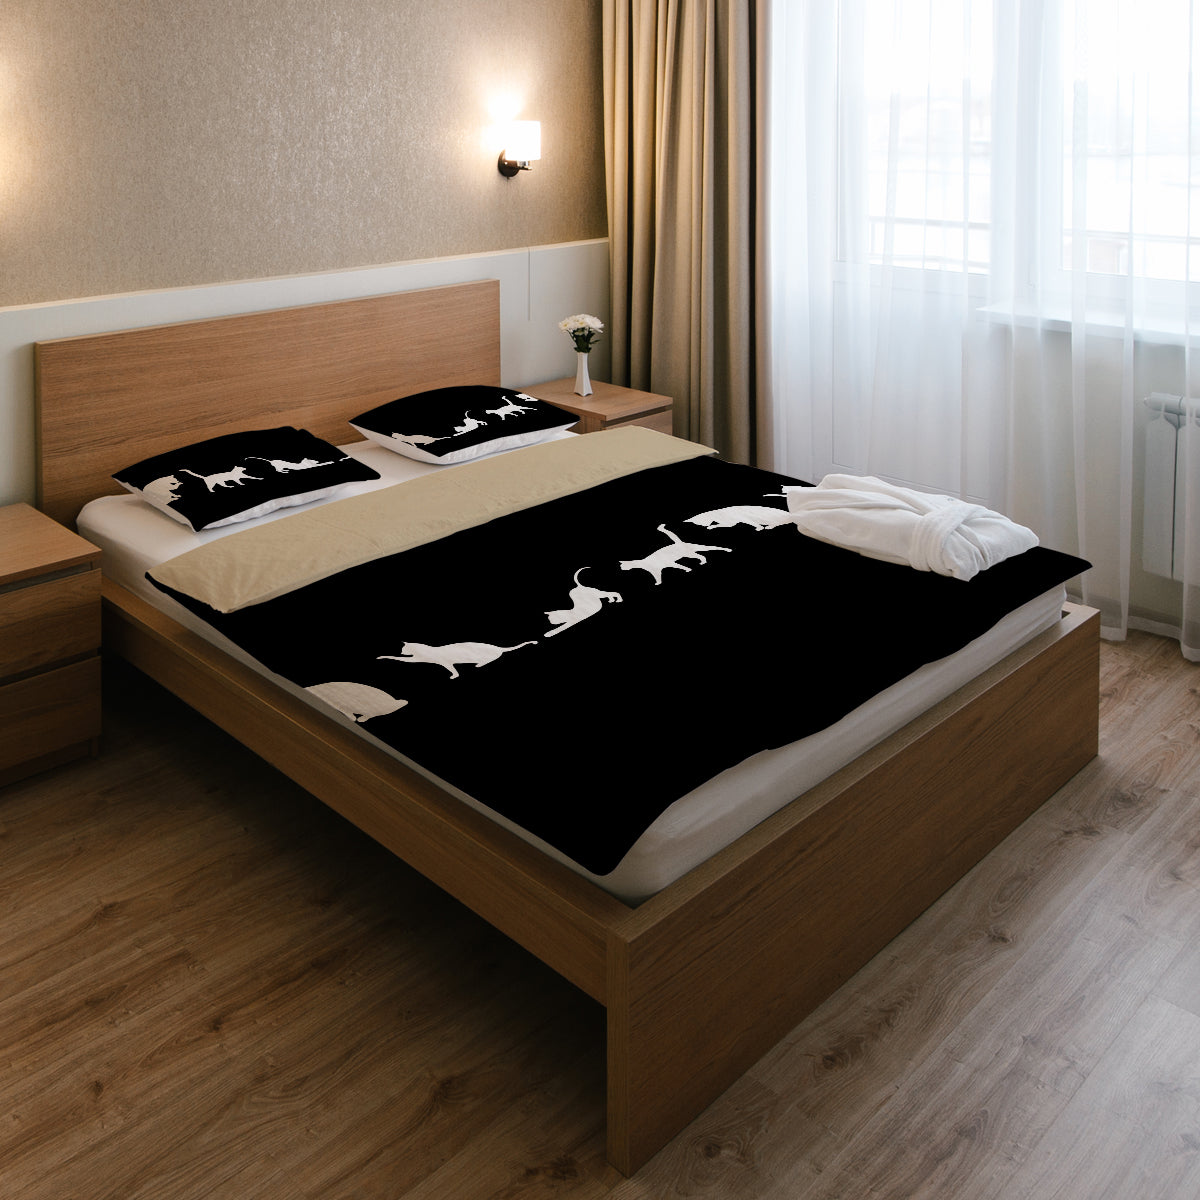 Black & White Bedding Set (Black)